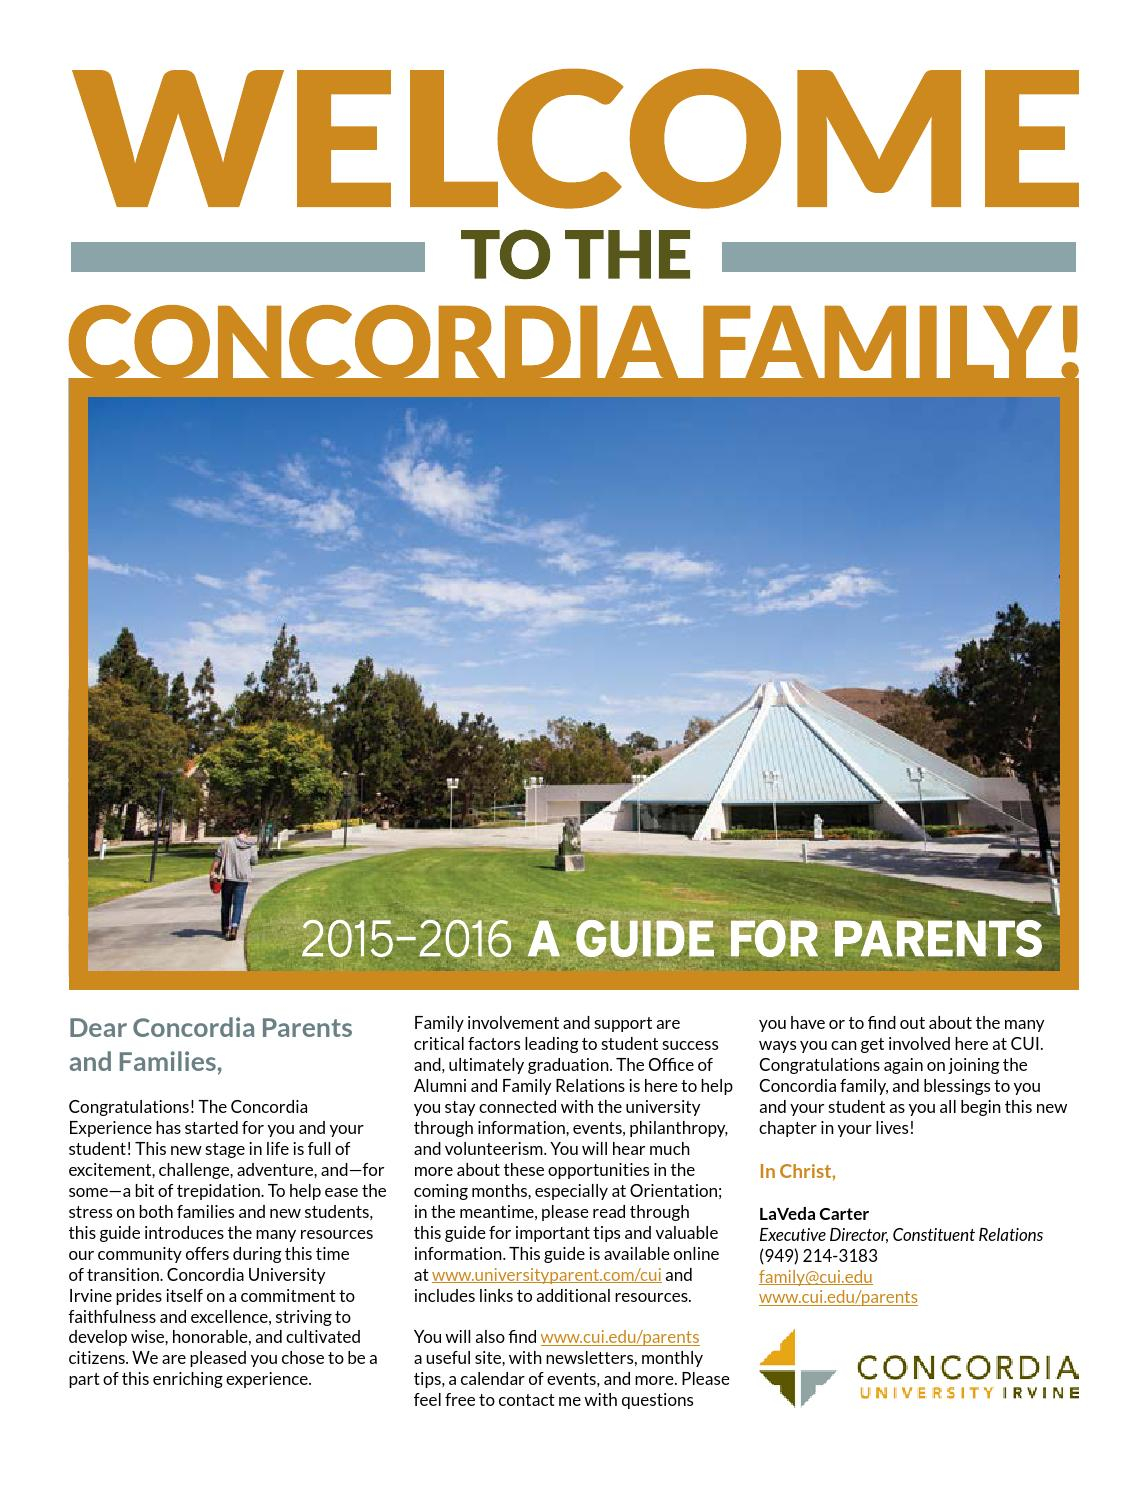 Concordia University Irvine 2015 2016 Guide For Parents Regarding Concordia Irvine Spring Break